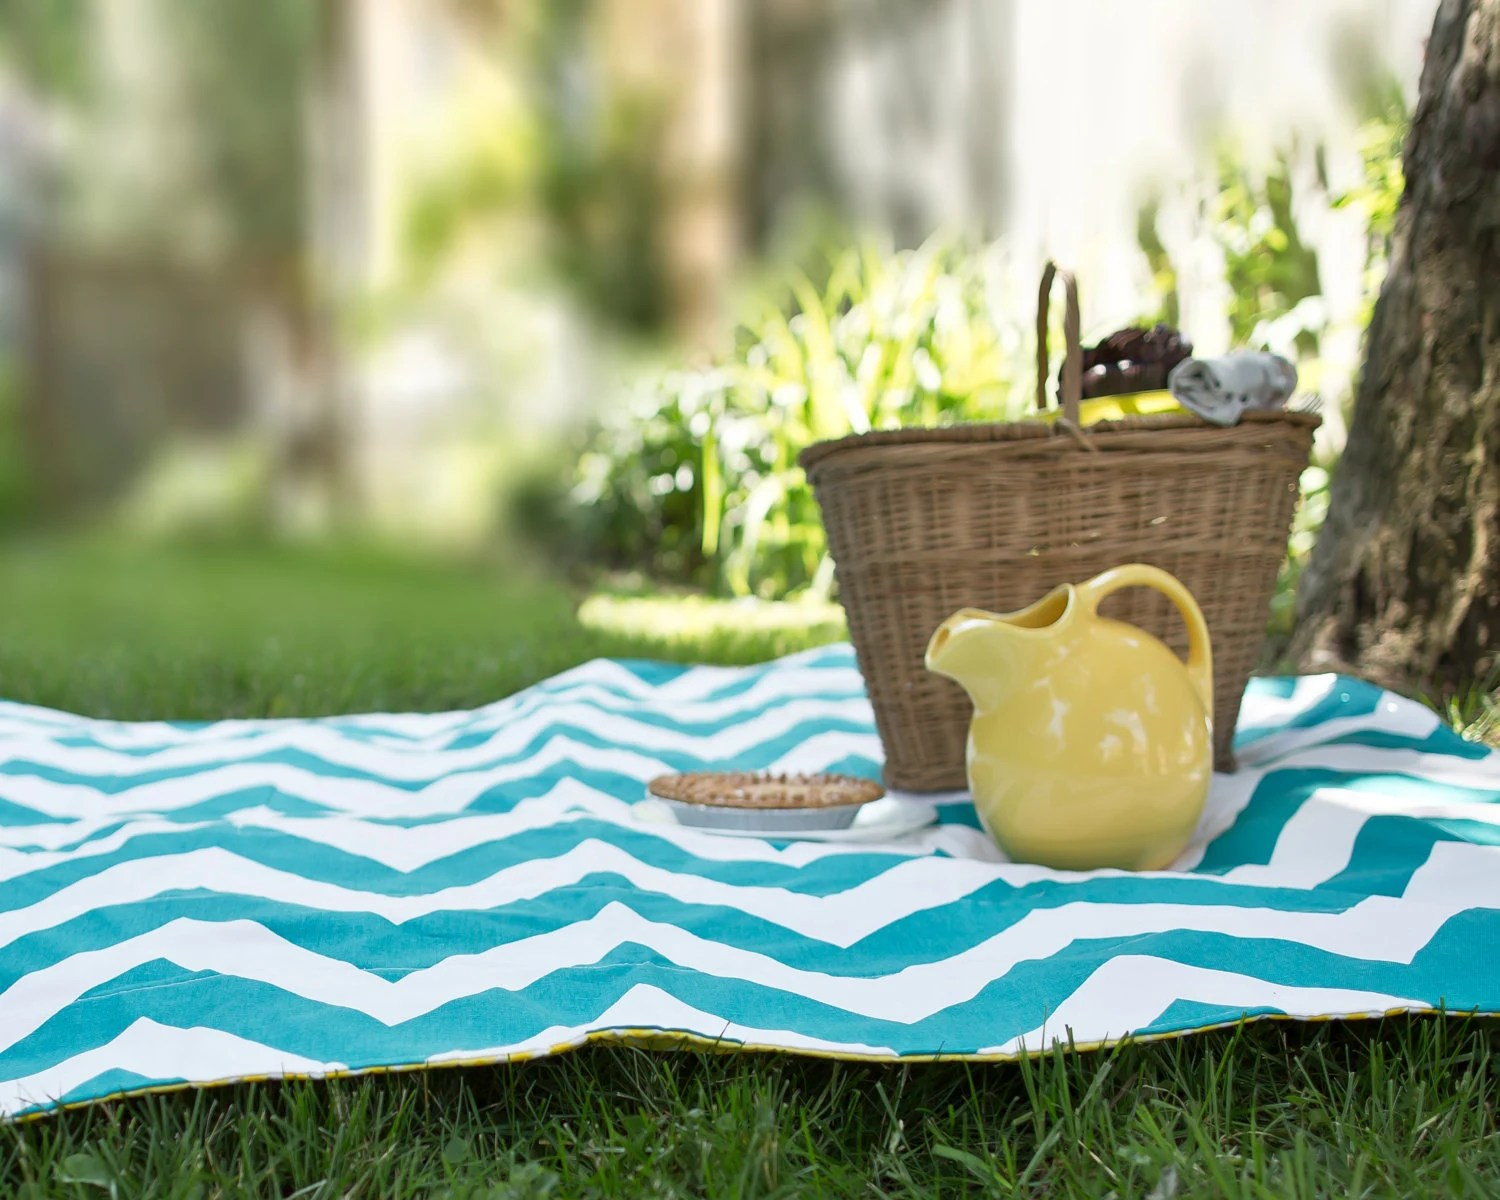 As Seen on HGTV - Waterproof Picnic Blanket - Portable Eco Friendly Quilted Beach Blanket in Teal Chevron